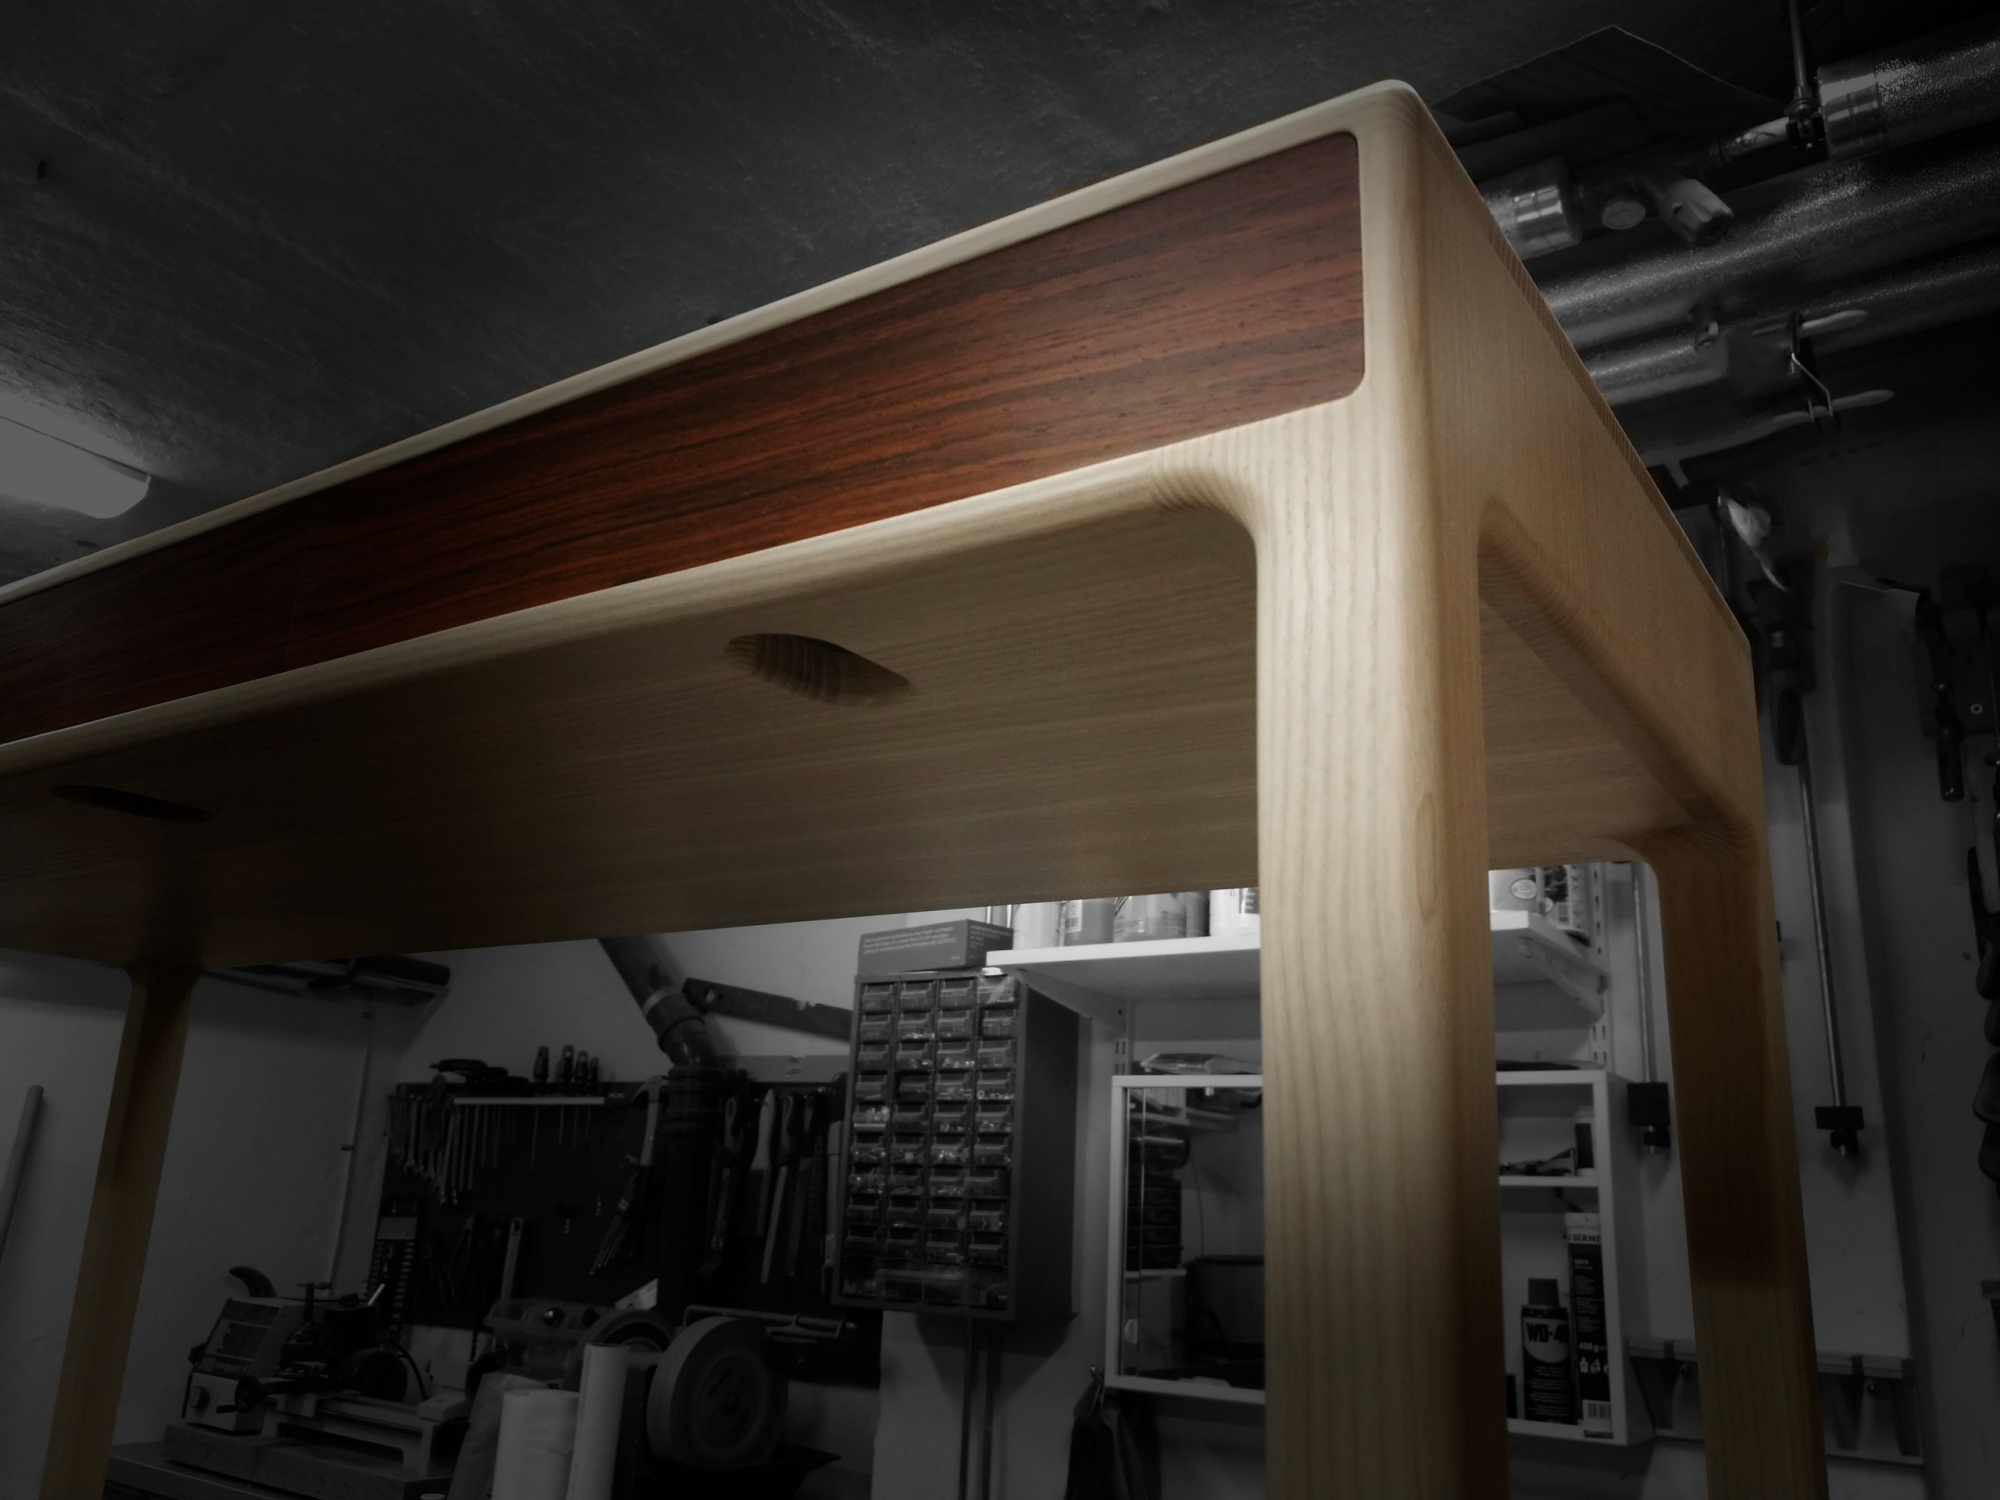 Started to youtube some of my router jigs-1.jpg